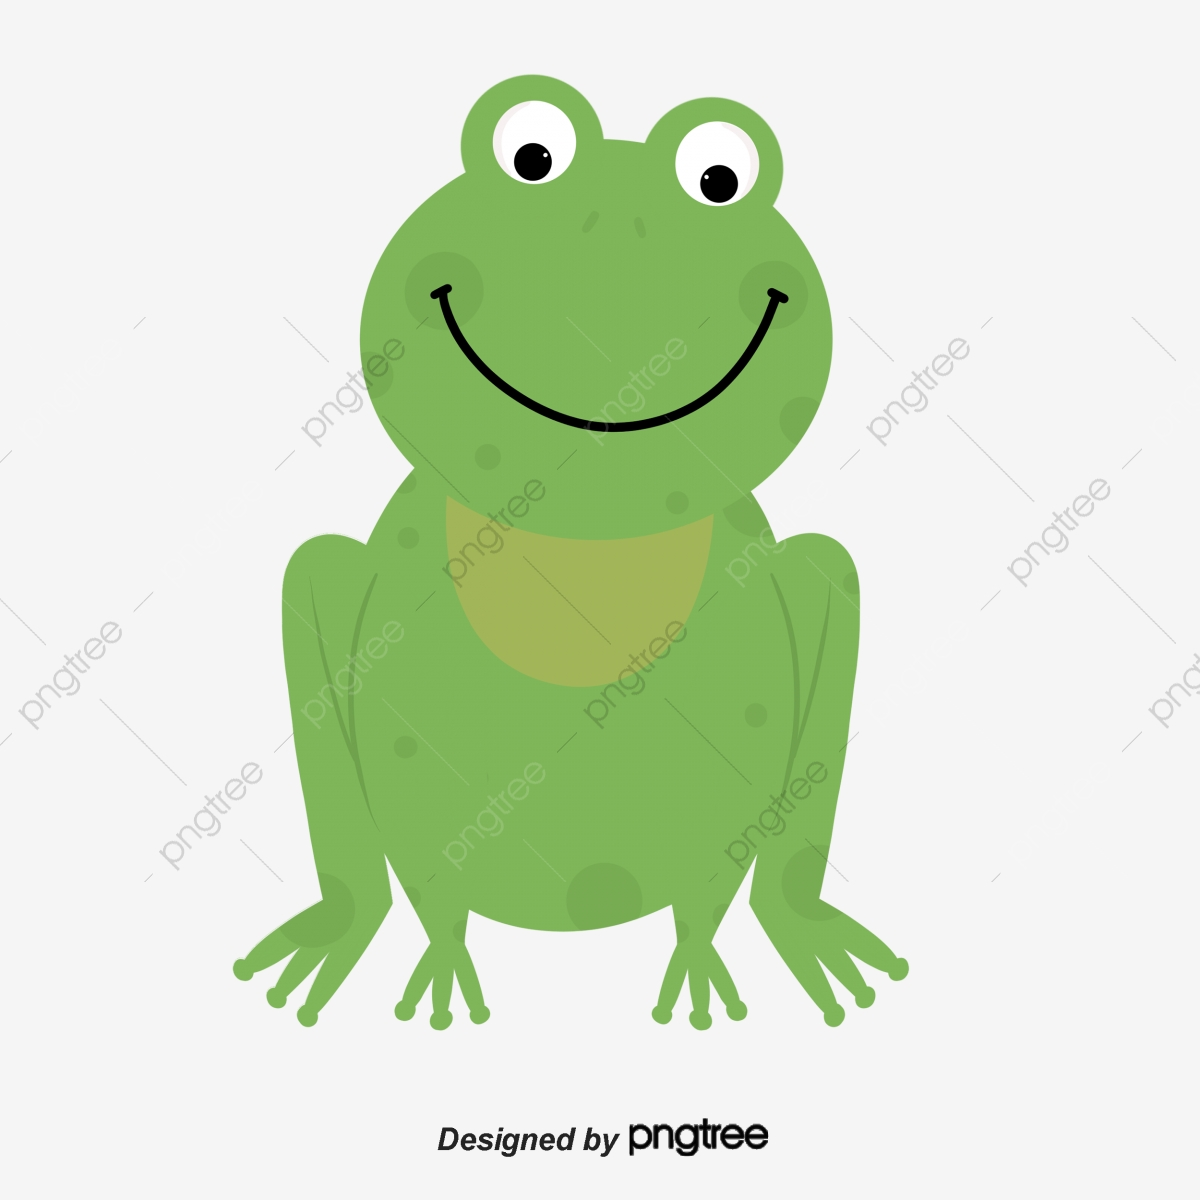 Frog clipart file. Animal cartoon lovely png